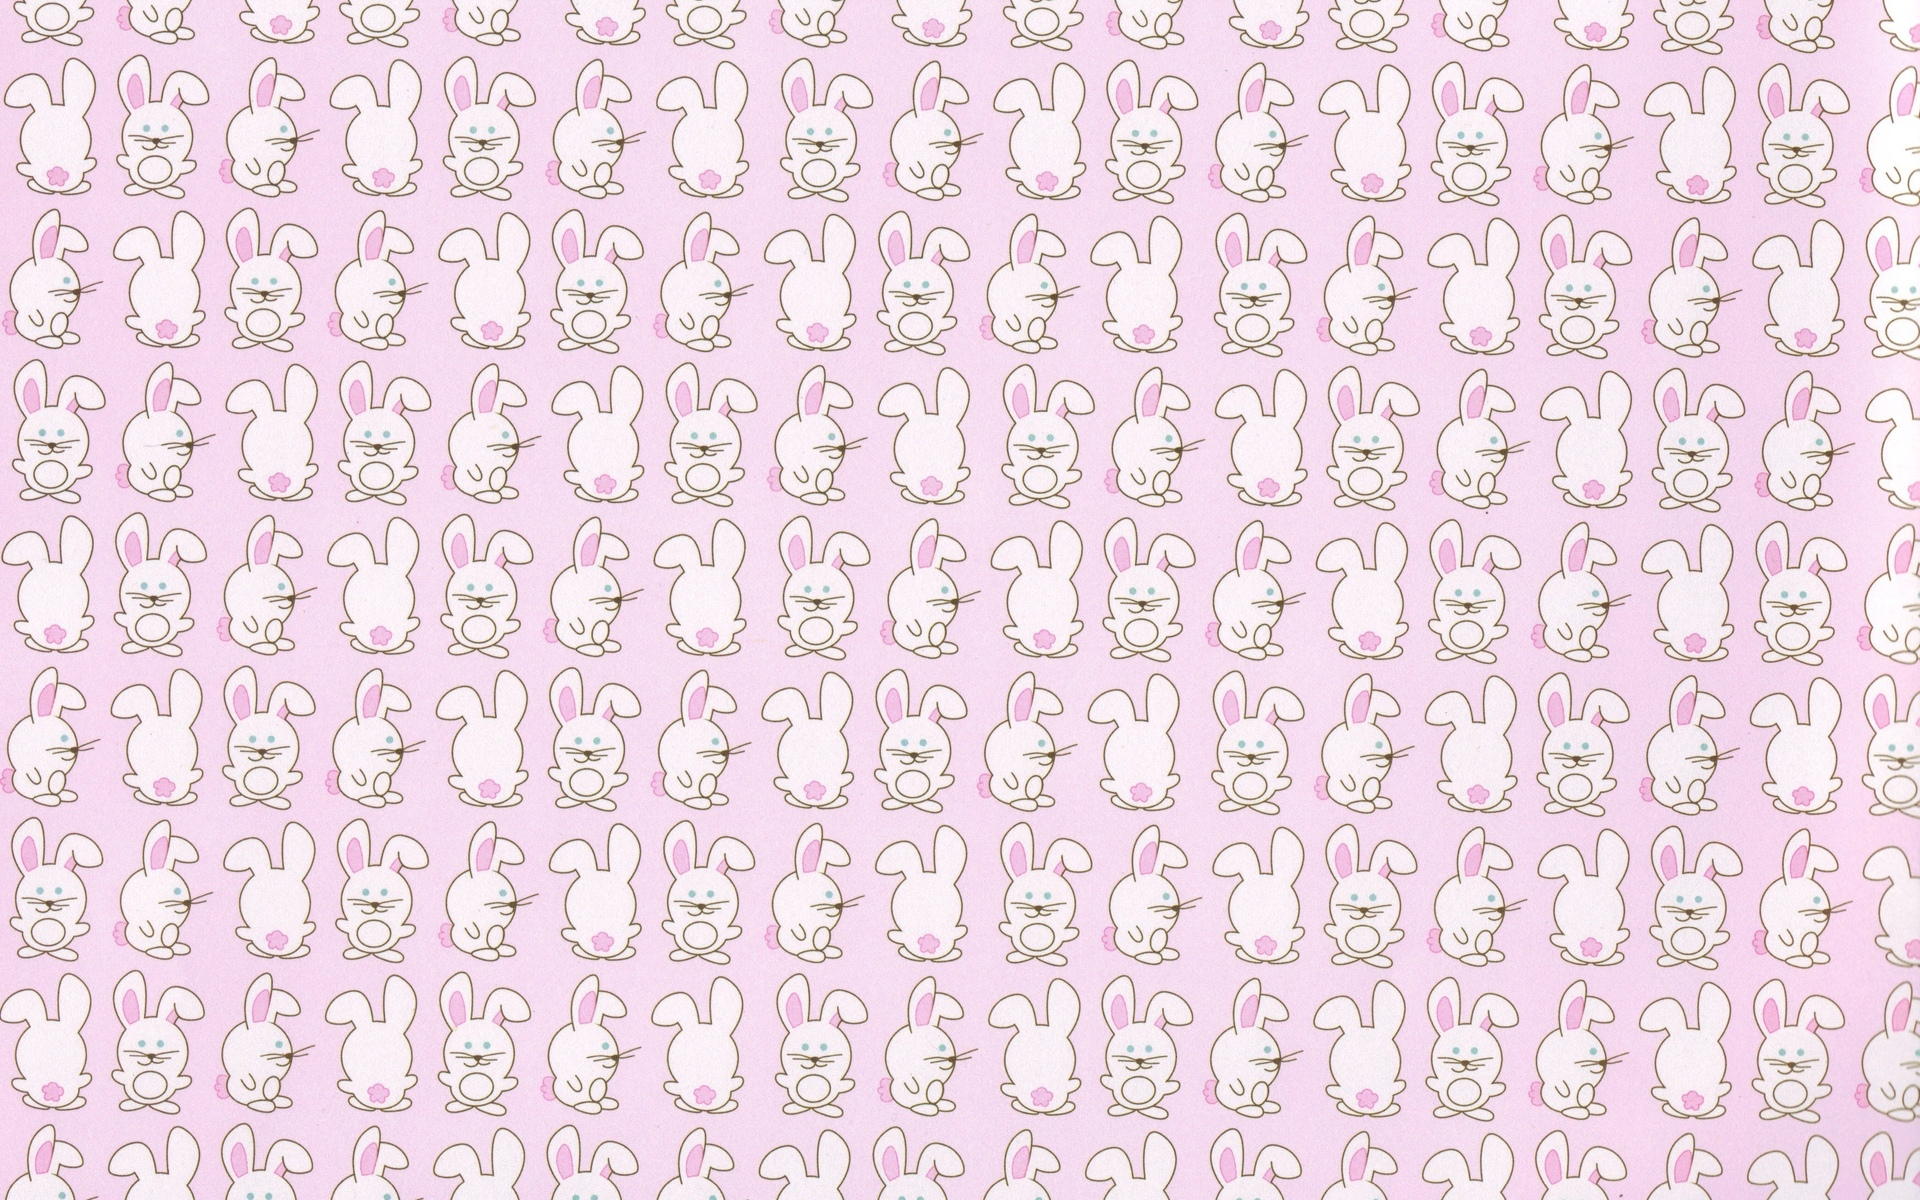 Anime Cool Bunny Rabbit Wallpapers Wallpaper Cave